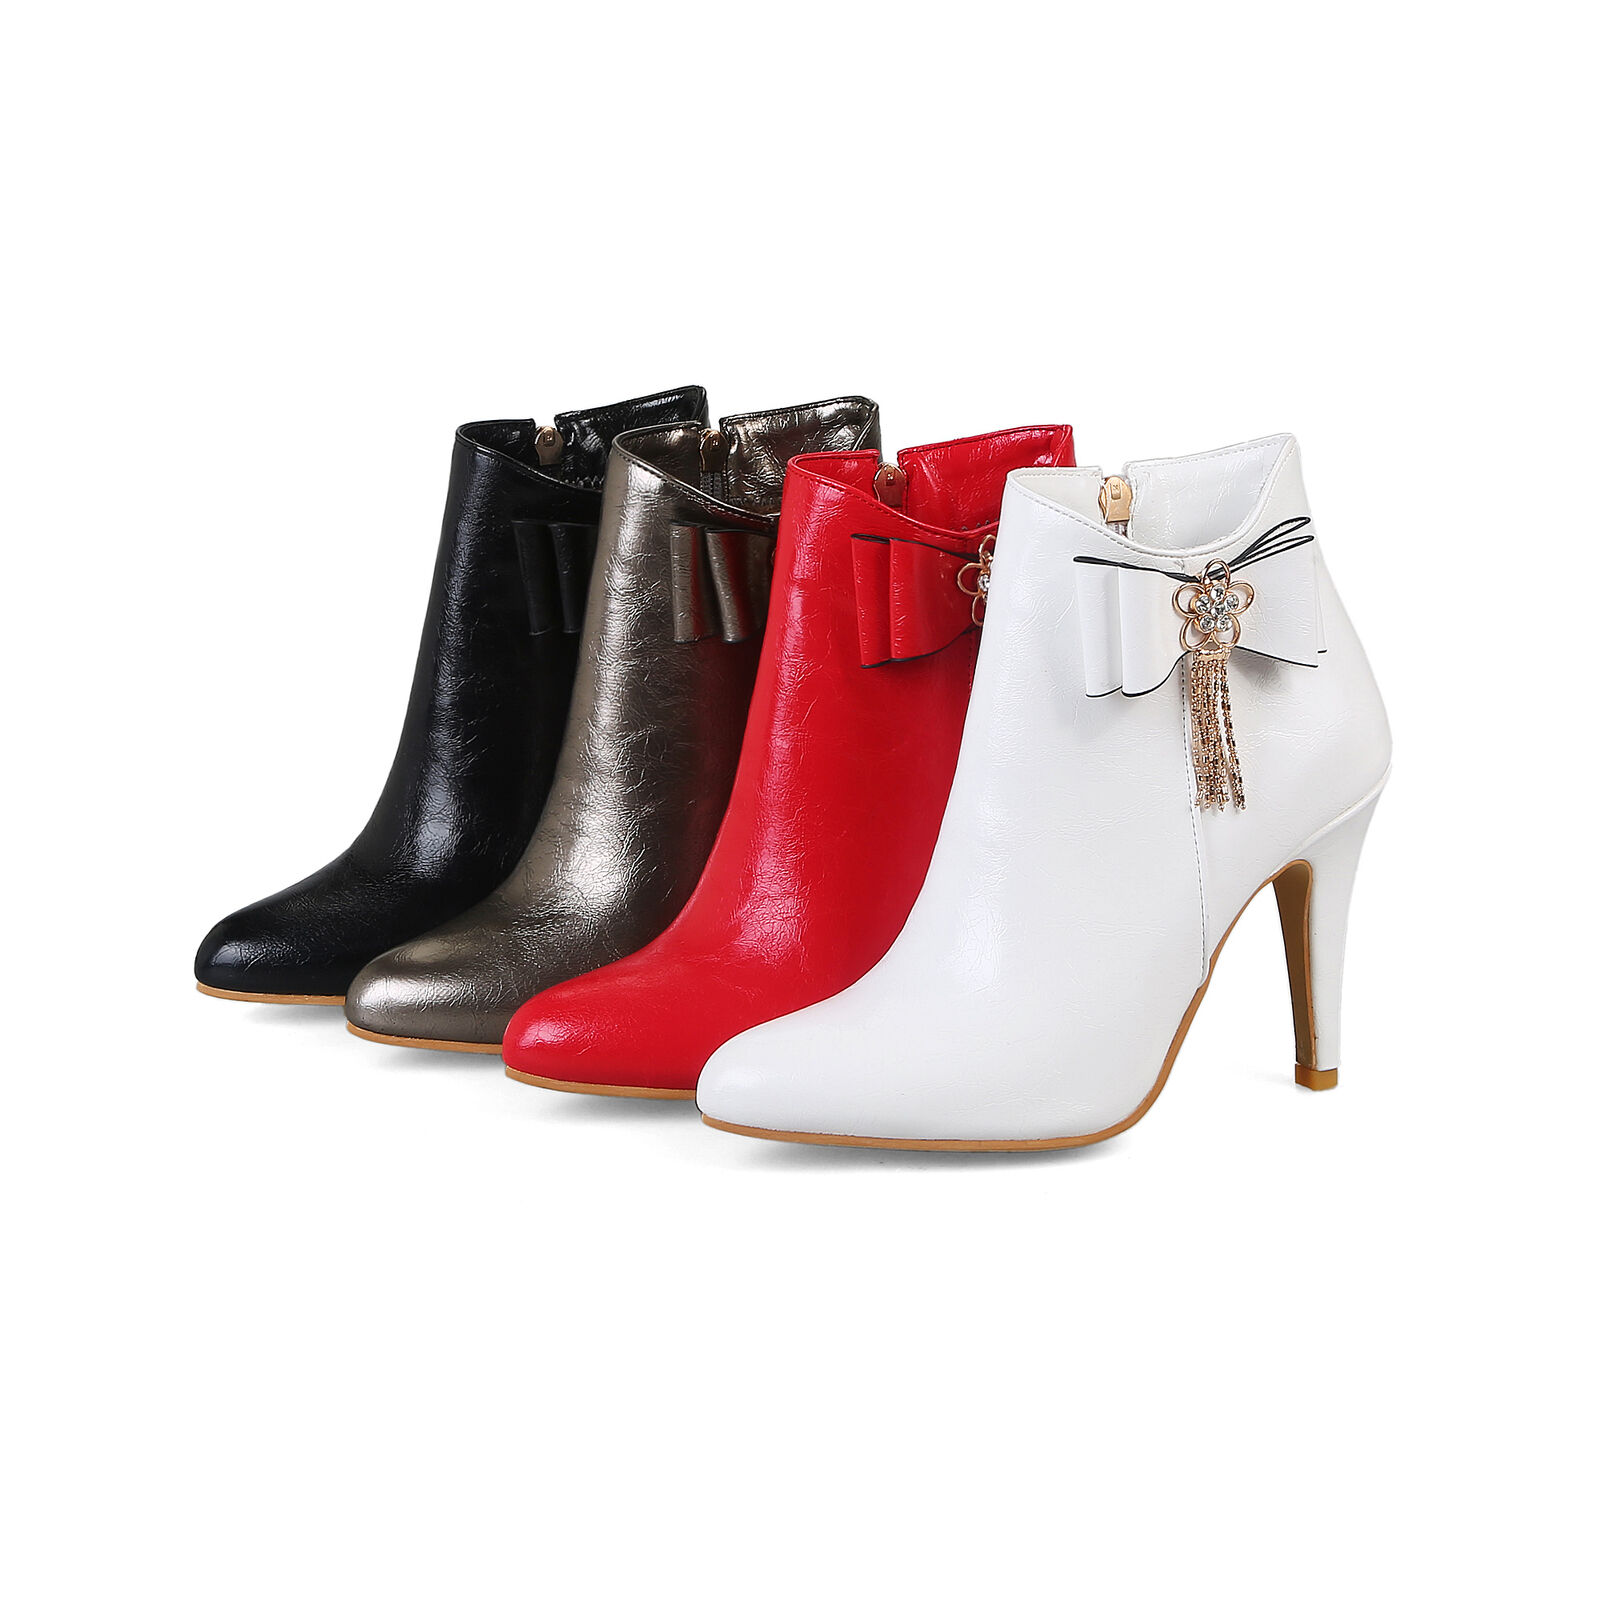 Women's Zip High Heel Ankle Boots Synthetic Leather Pointed Plus Size shoes O025